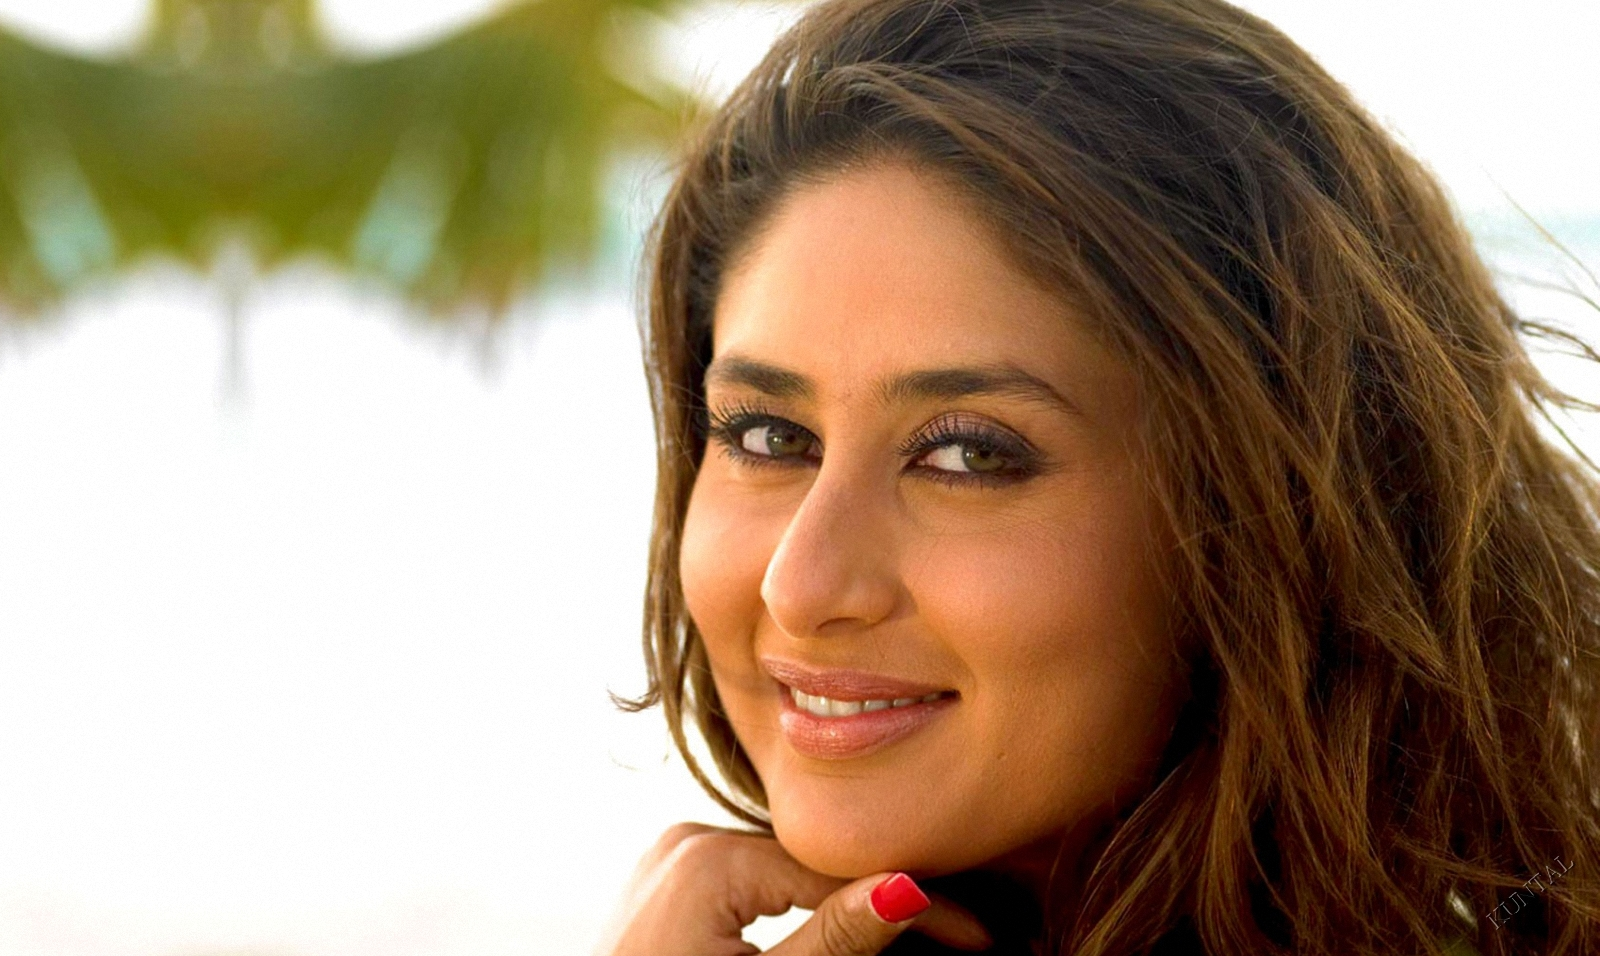 http://2.bp.blogspot.com/-PcC_89V83B0/TqJpjnuPVRI/AAAAAAAABgY/LohRbGIQUaU/s1600/Bollywood+Actress+Kareena+Kapoor+hd+Wallpapers+in+Bikini-15.jpg